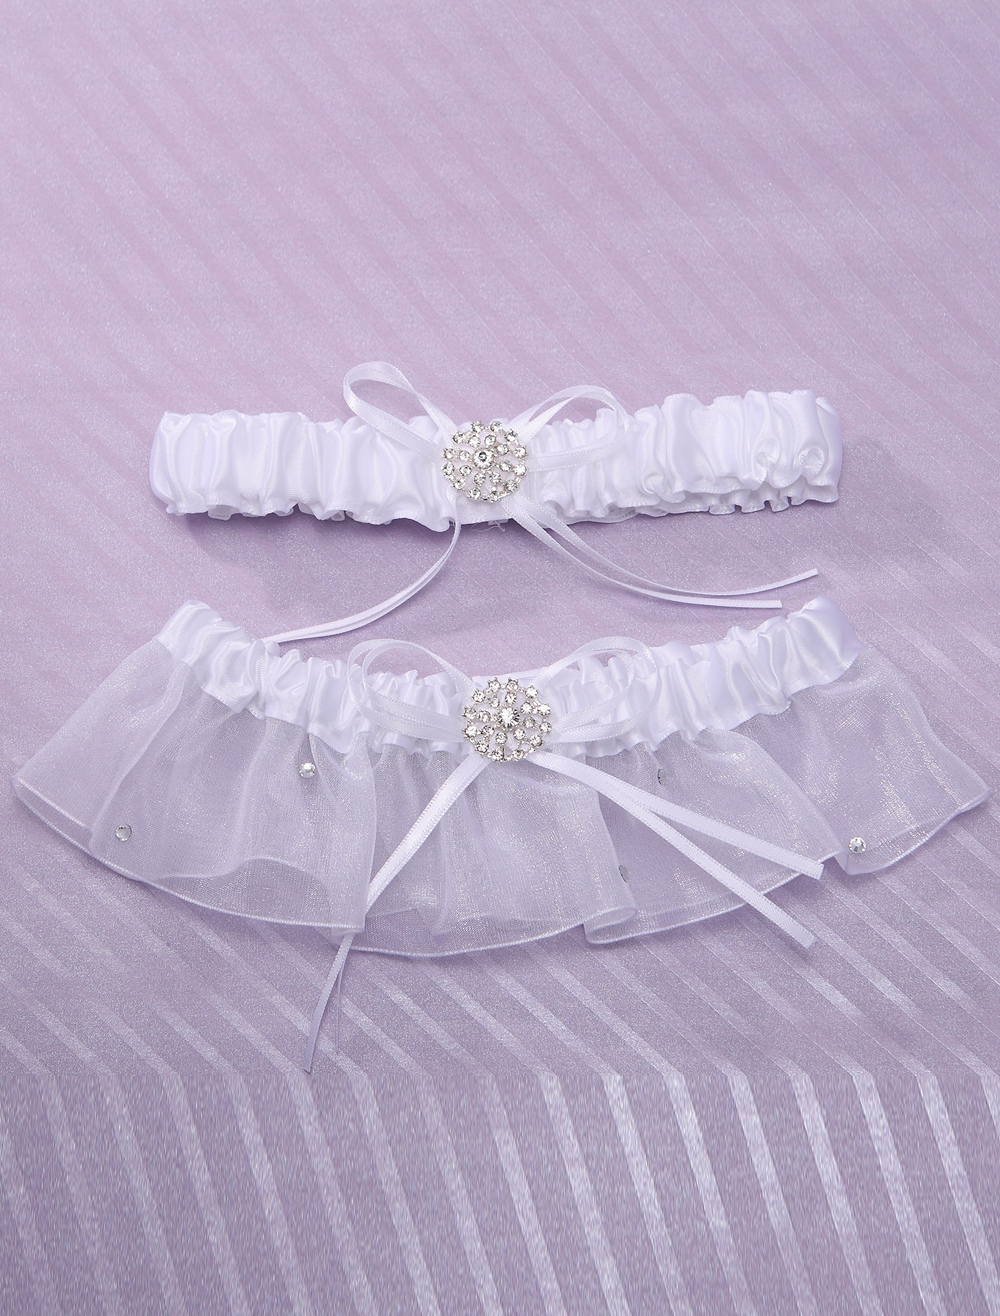 Attractive white bridal wedding garter for Garter under wedding dress